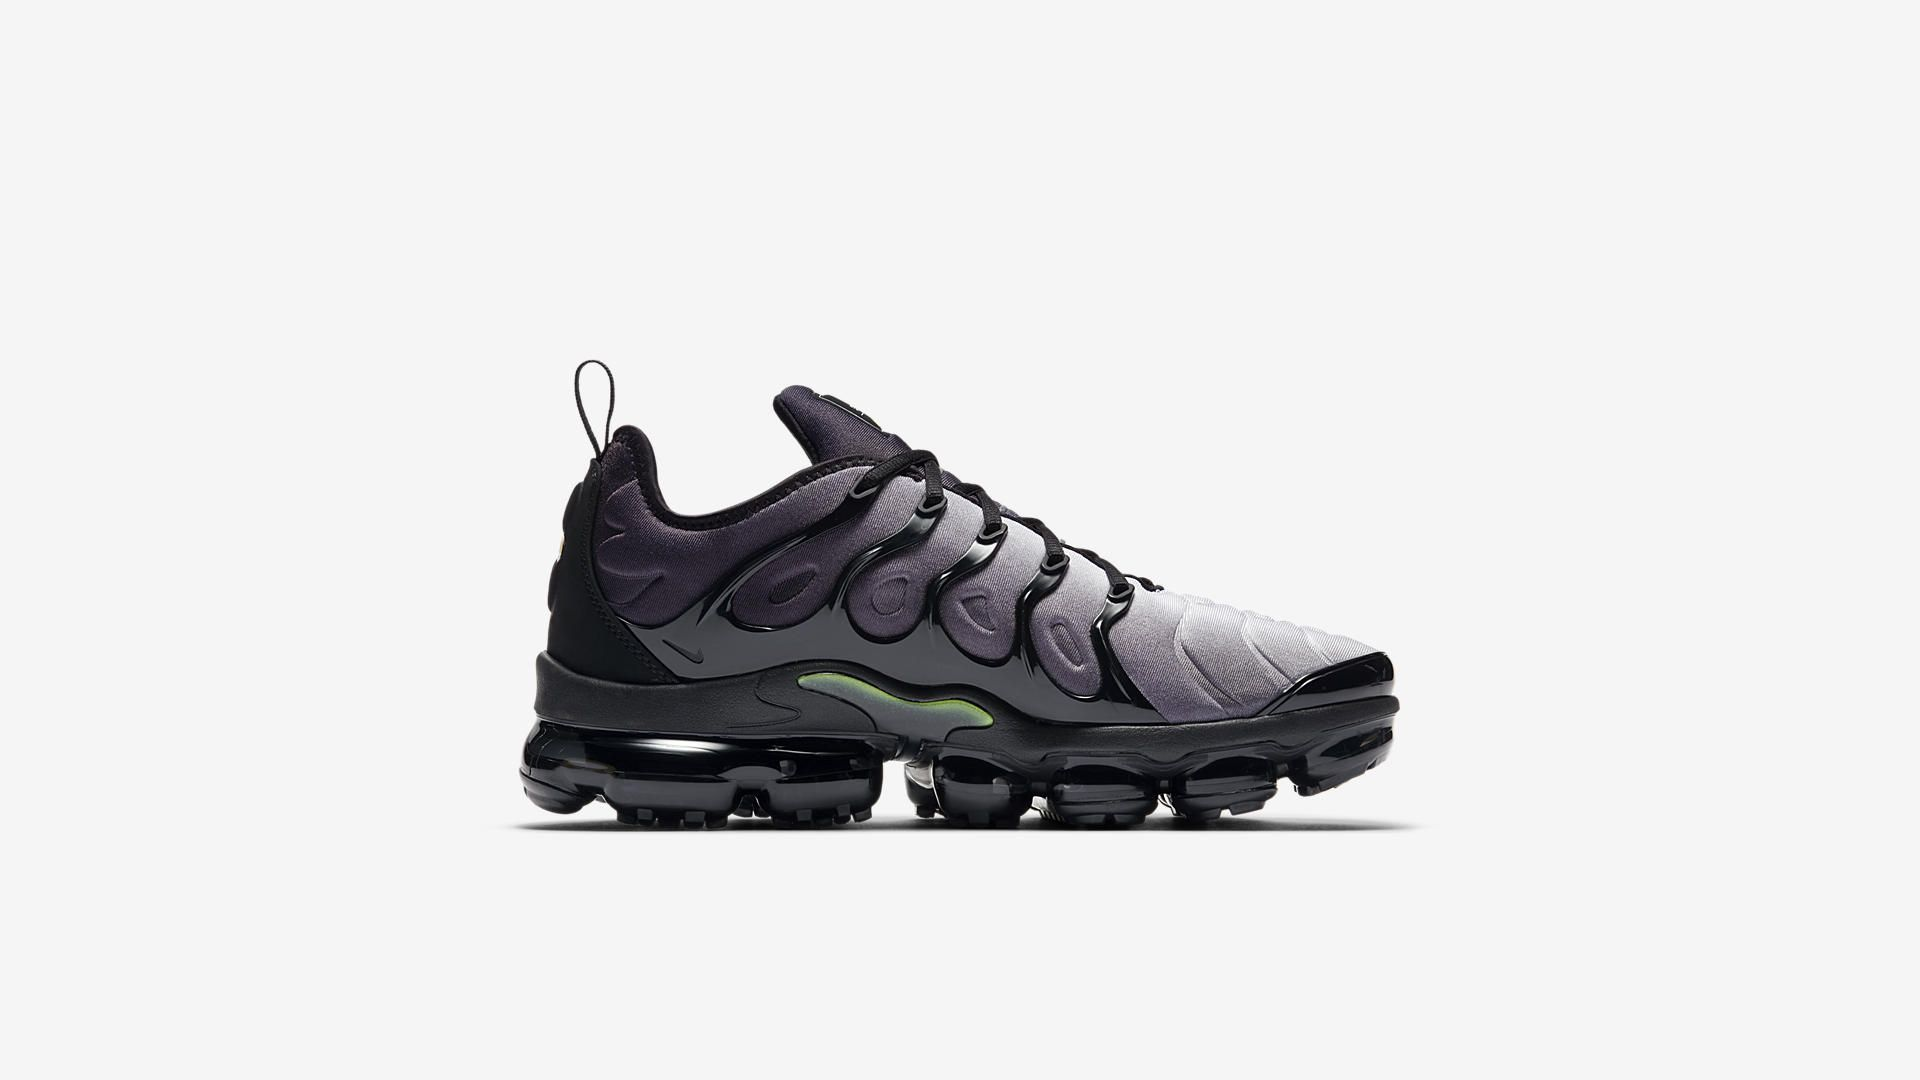 b491abb8542 Nike Air Vapormax Plus – Black   Volt